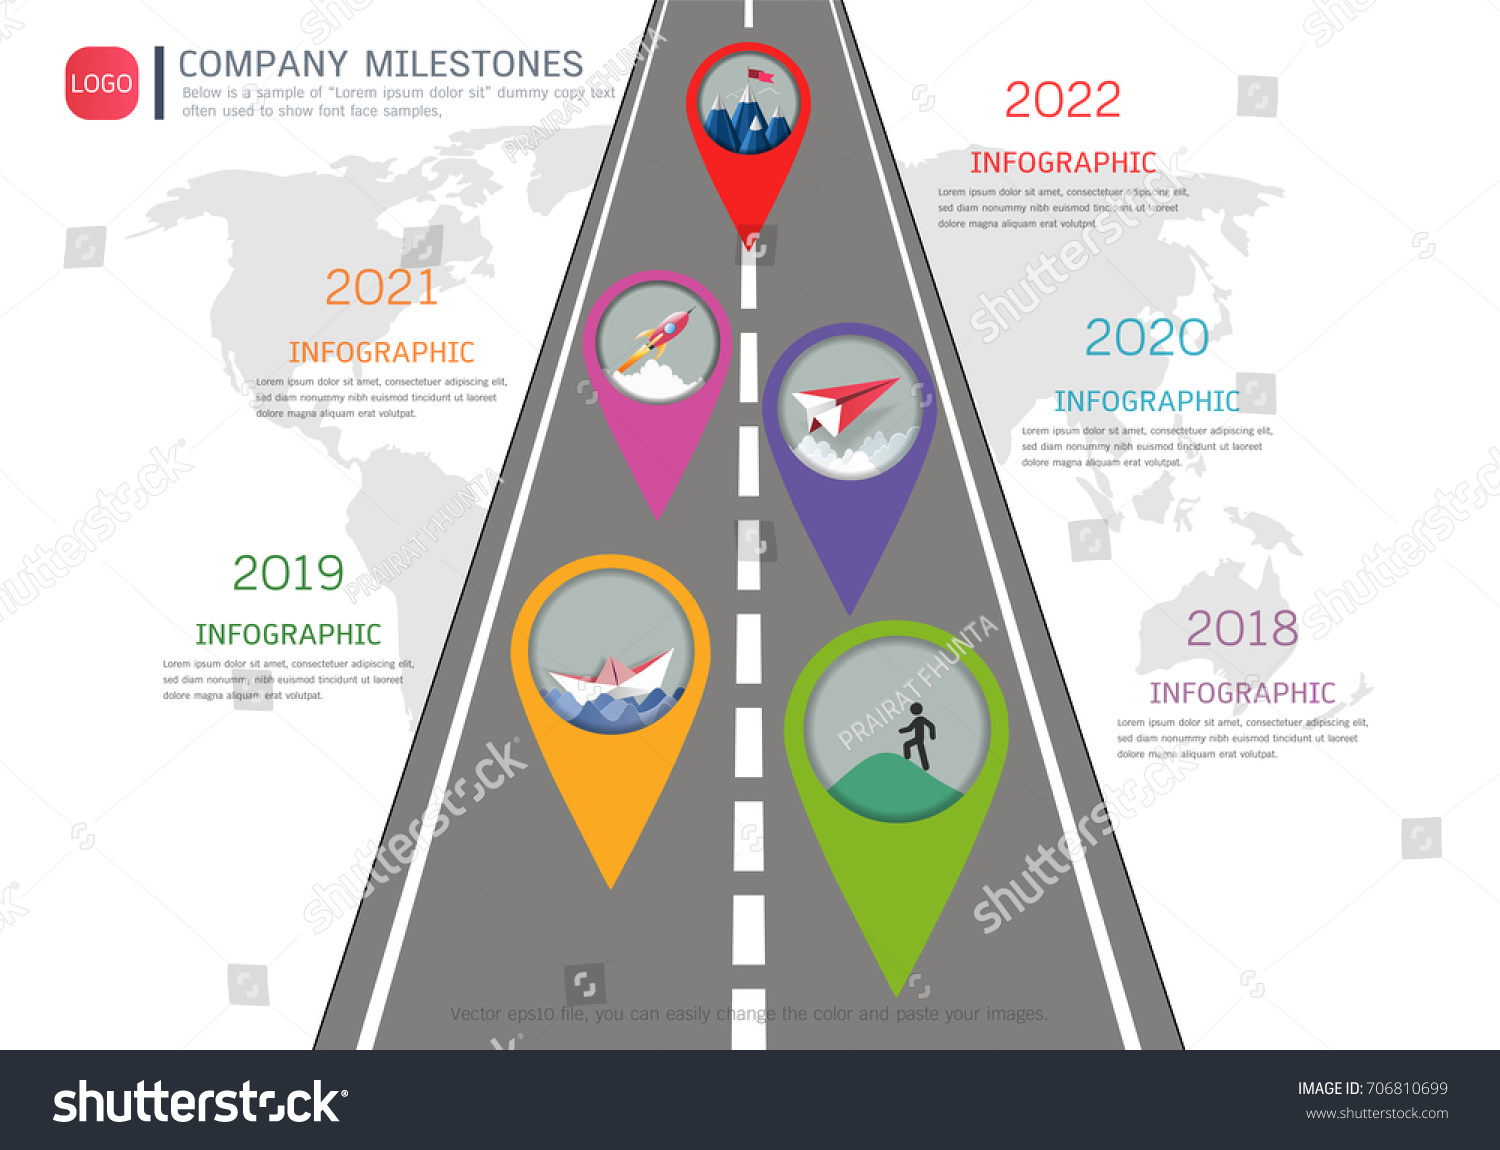 Milestone Timeline Infographic Design Road Map Stock Vector Royalty